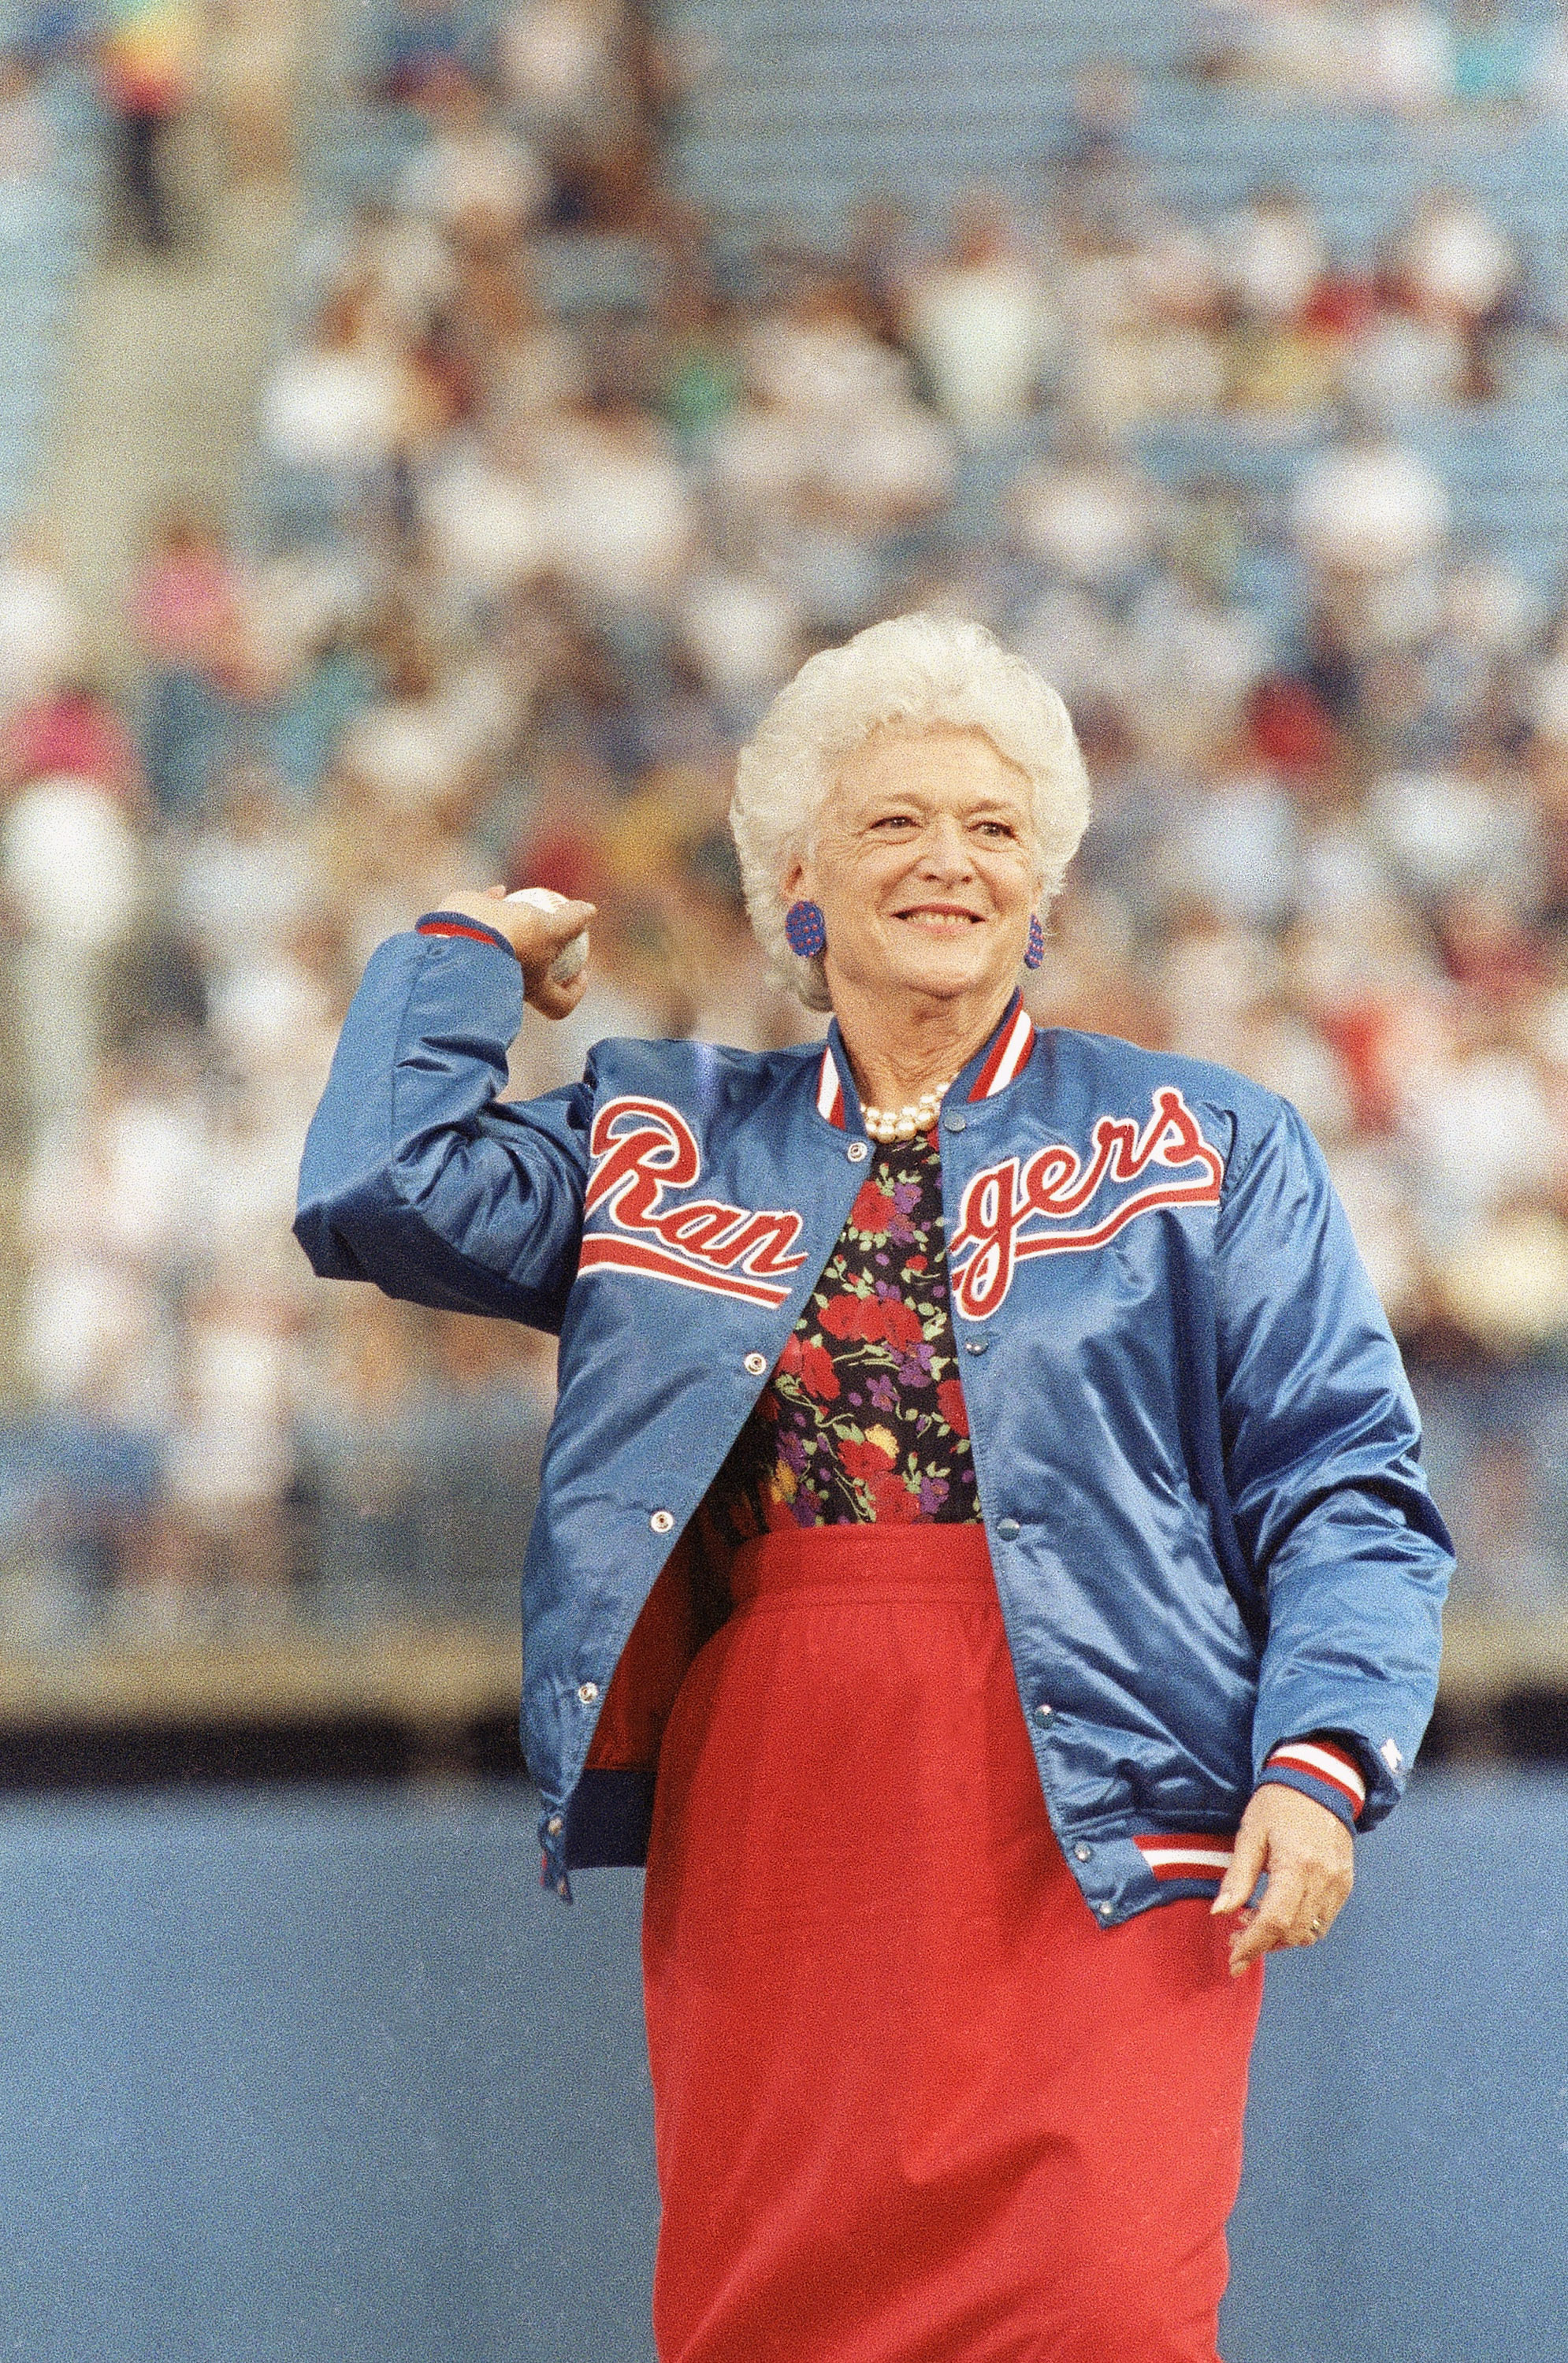 First lady Barbara Bush throws out the first pitch before the start of the Texas Rangers game against the New York Yankees in Arlington, Texas, May 5, 1989. Mrs. Bush's son, George W. Bush, is an owner of the Texas Rangers. (AP Photo/Bill Janscha)